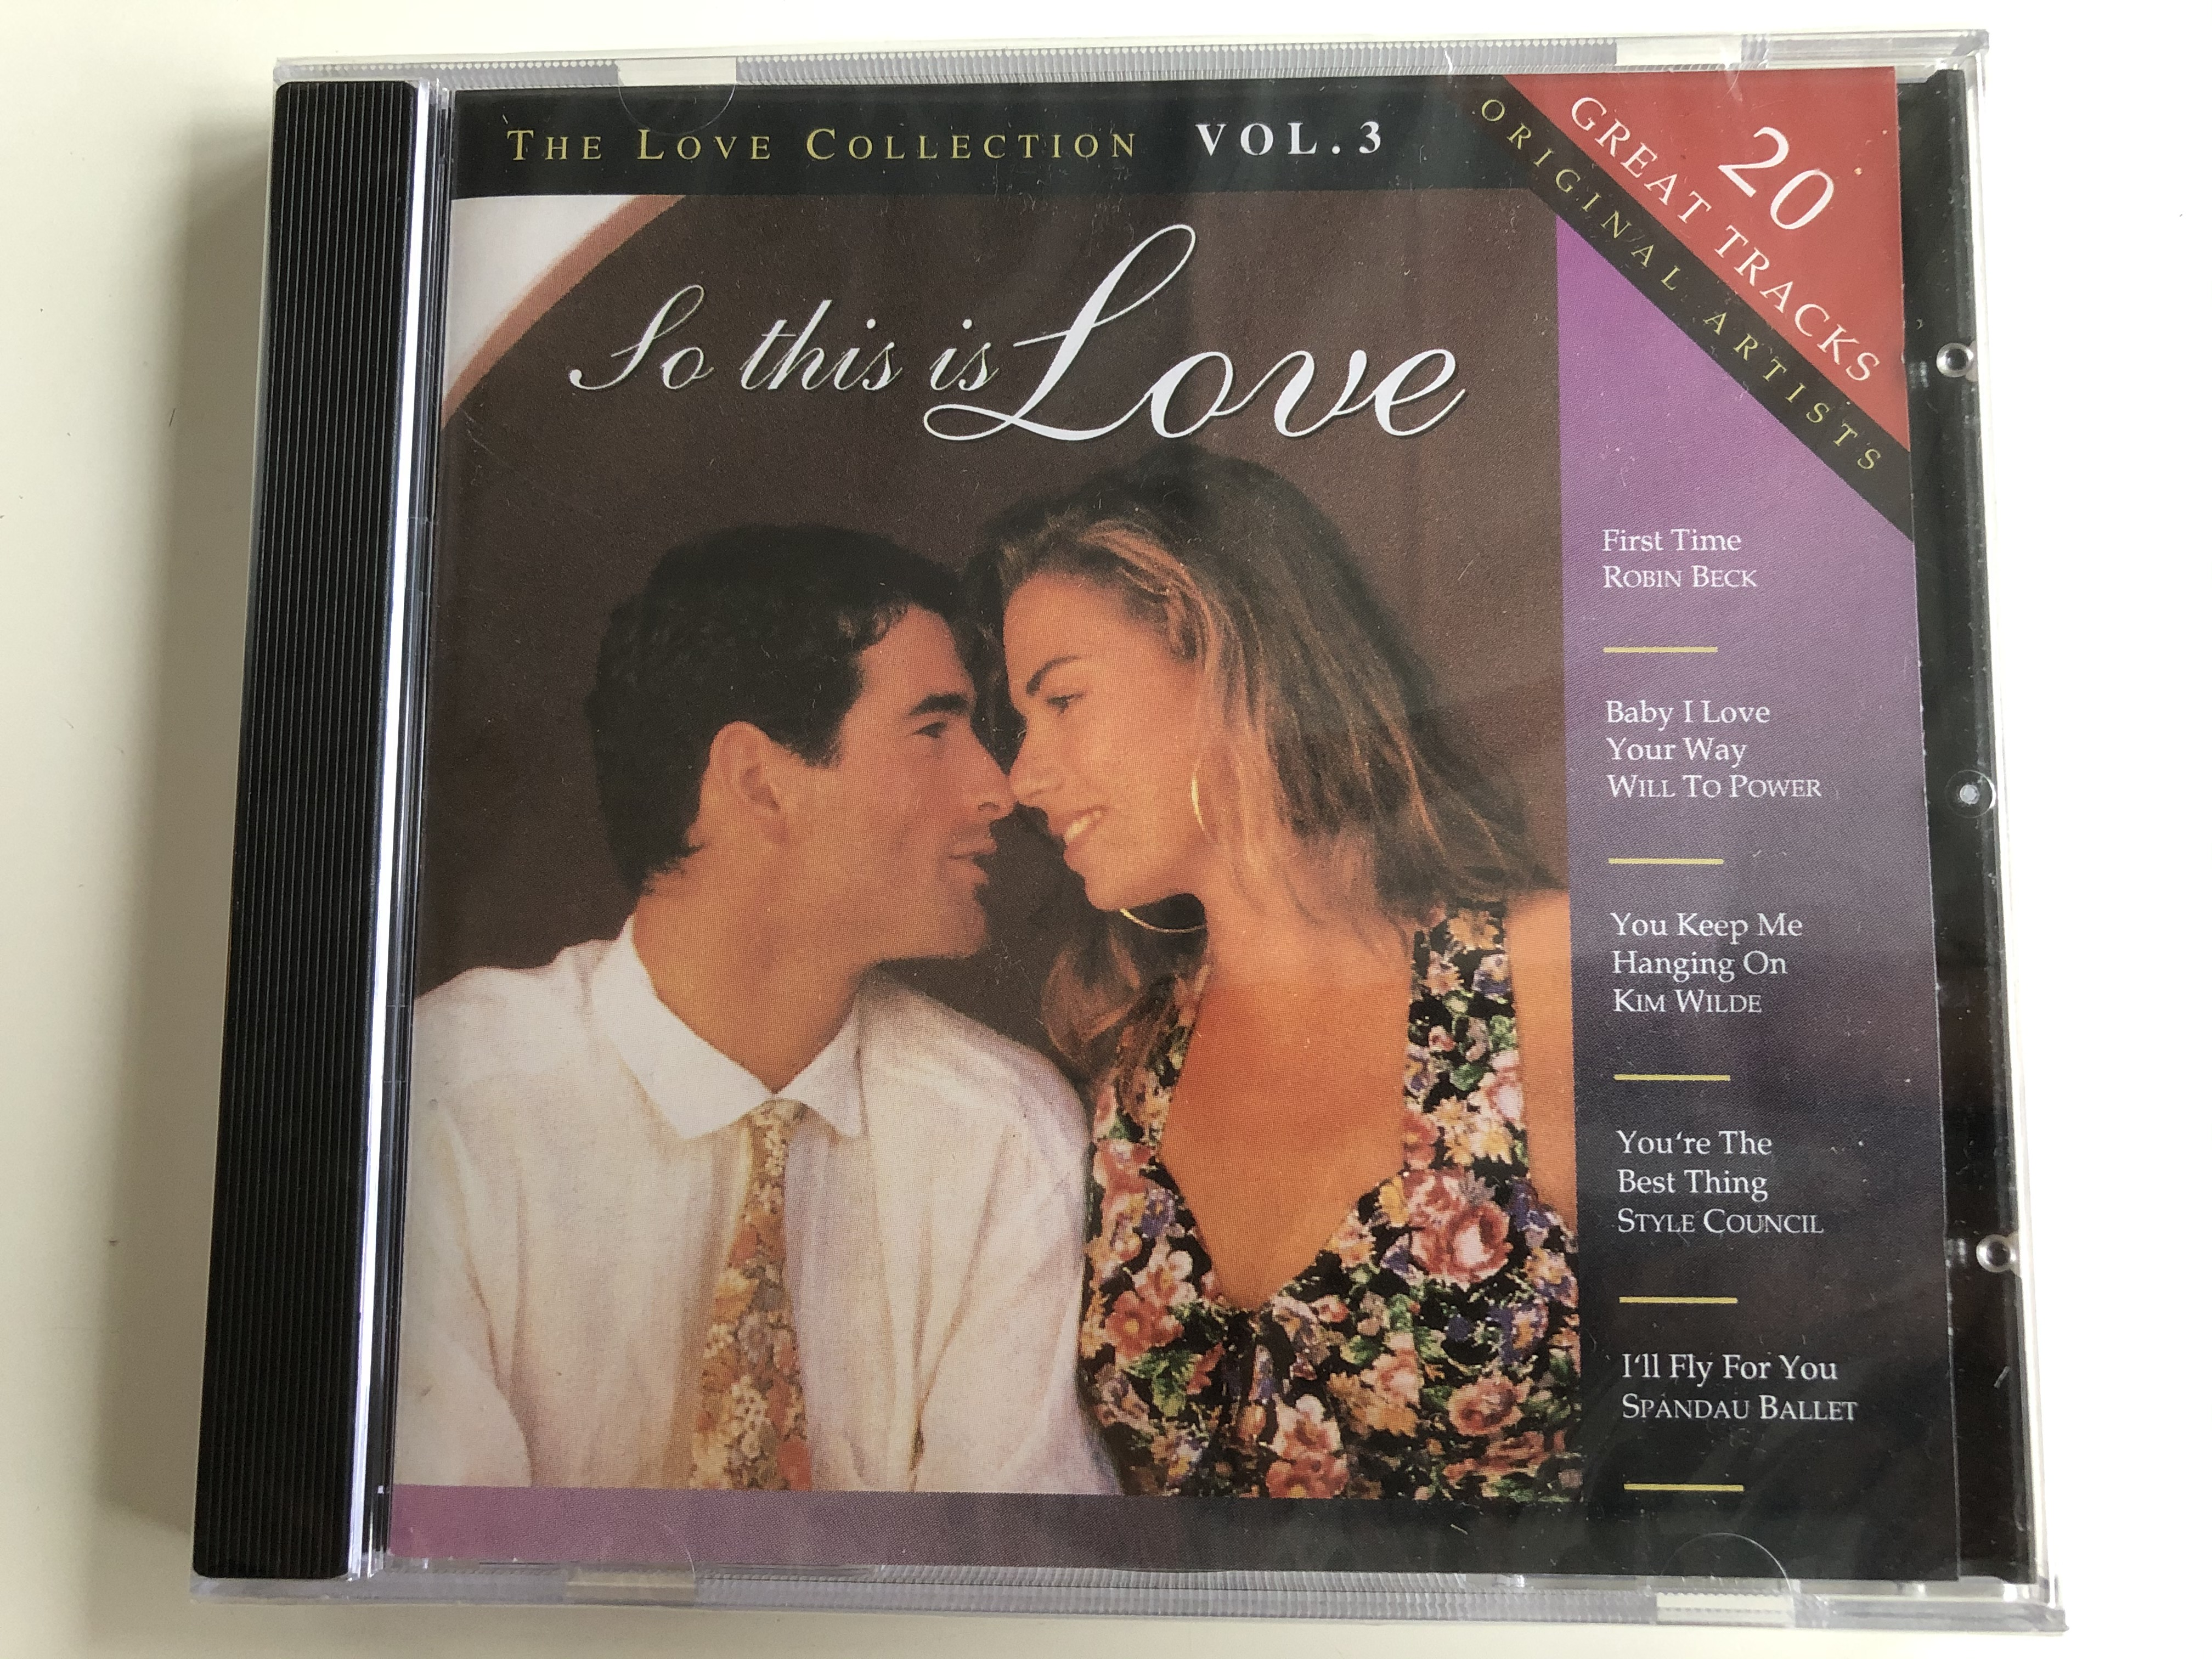 the-love-collection-vol.-3-so-this-is-love-20-great-tracks-original-artists-first-time-robin-beck-baby-i-love-your-way-will-to-power-you-keep-me-hanging-on-kim-wilde-you-re-the-1-.jpg